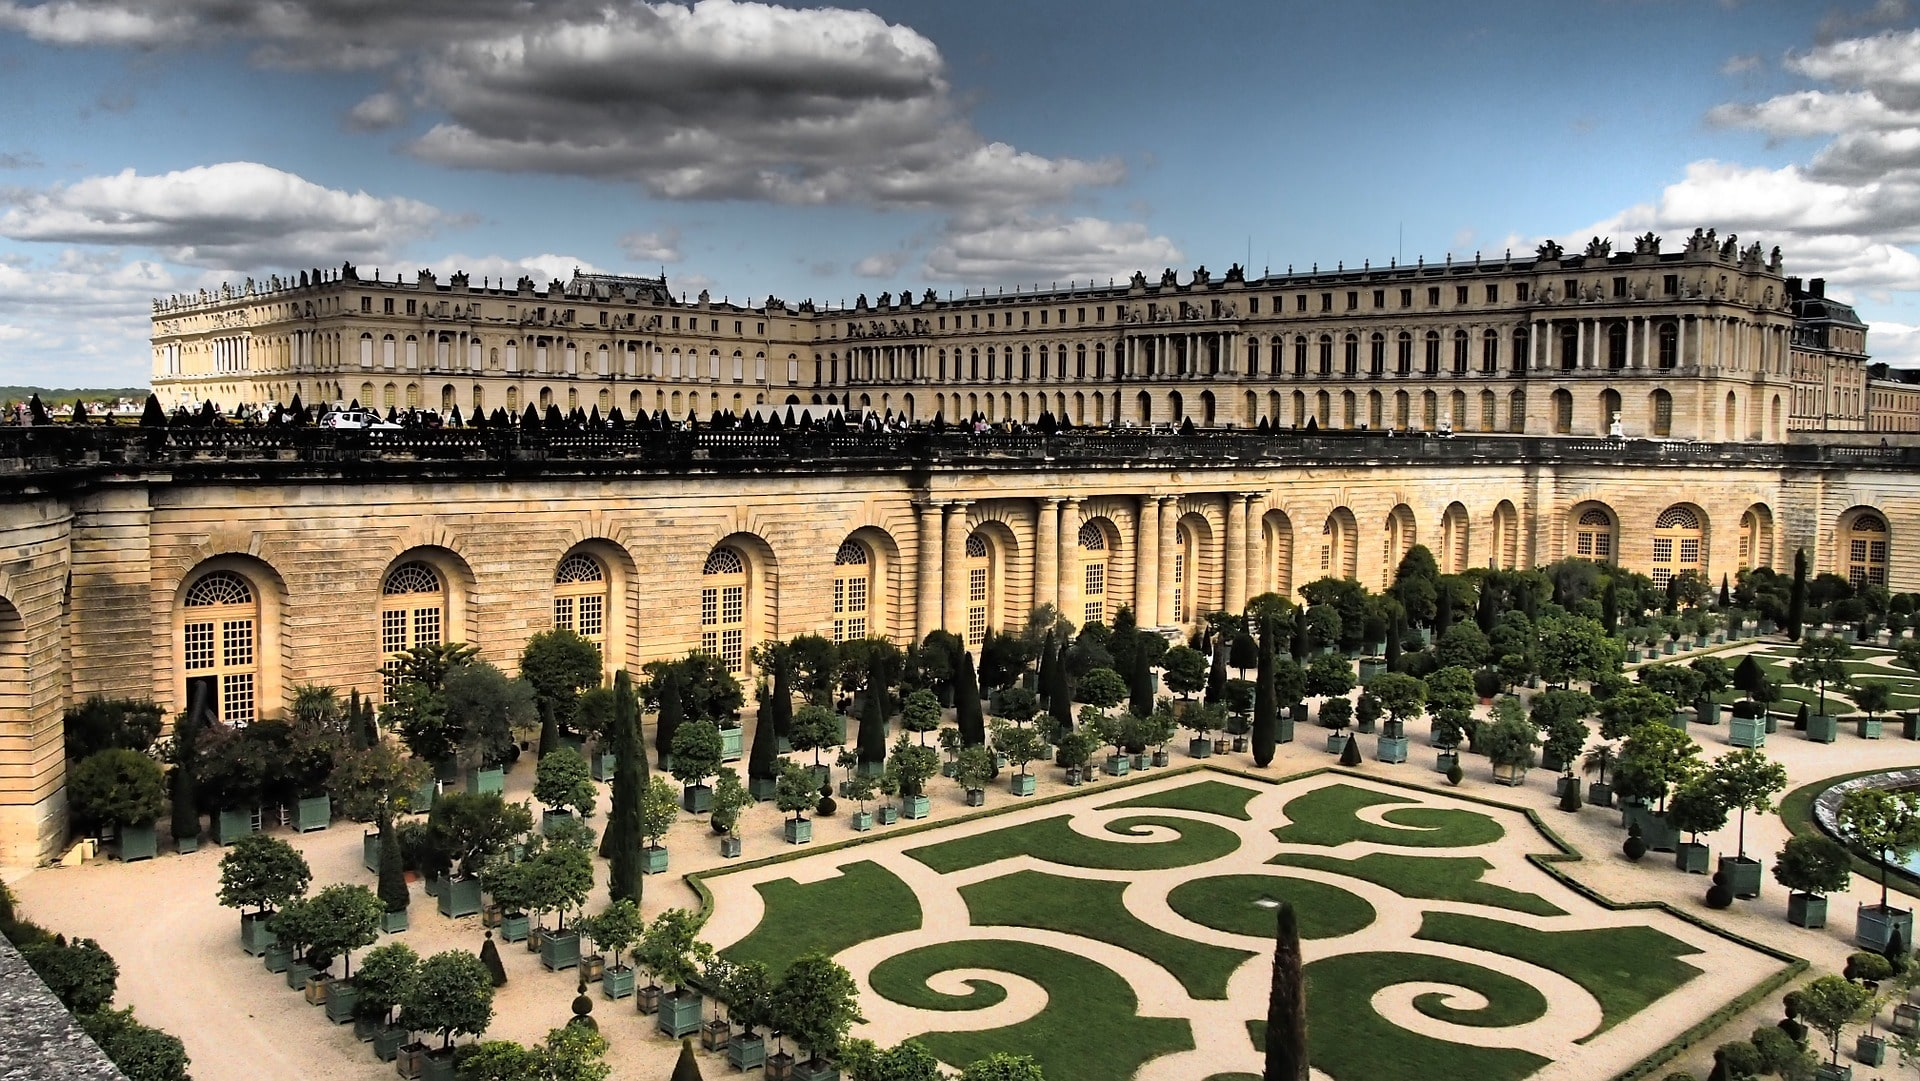 Versailles is one of the most amazing places to visit in France